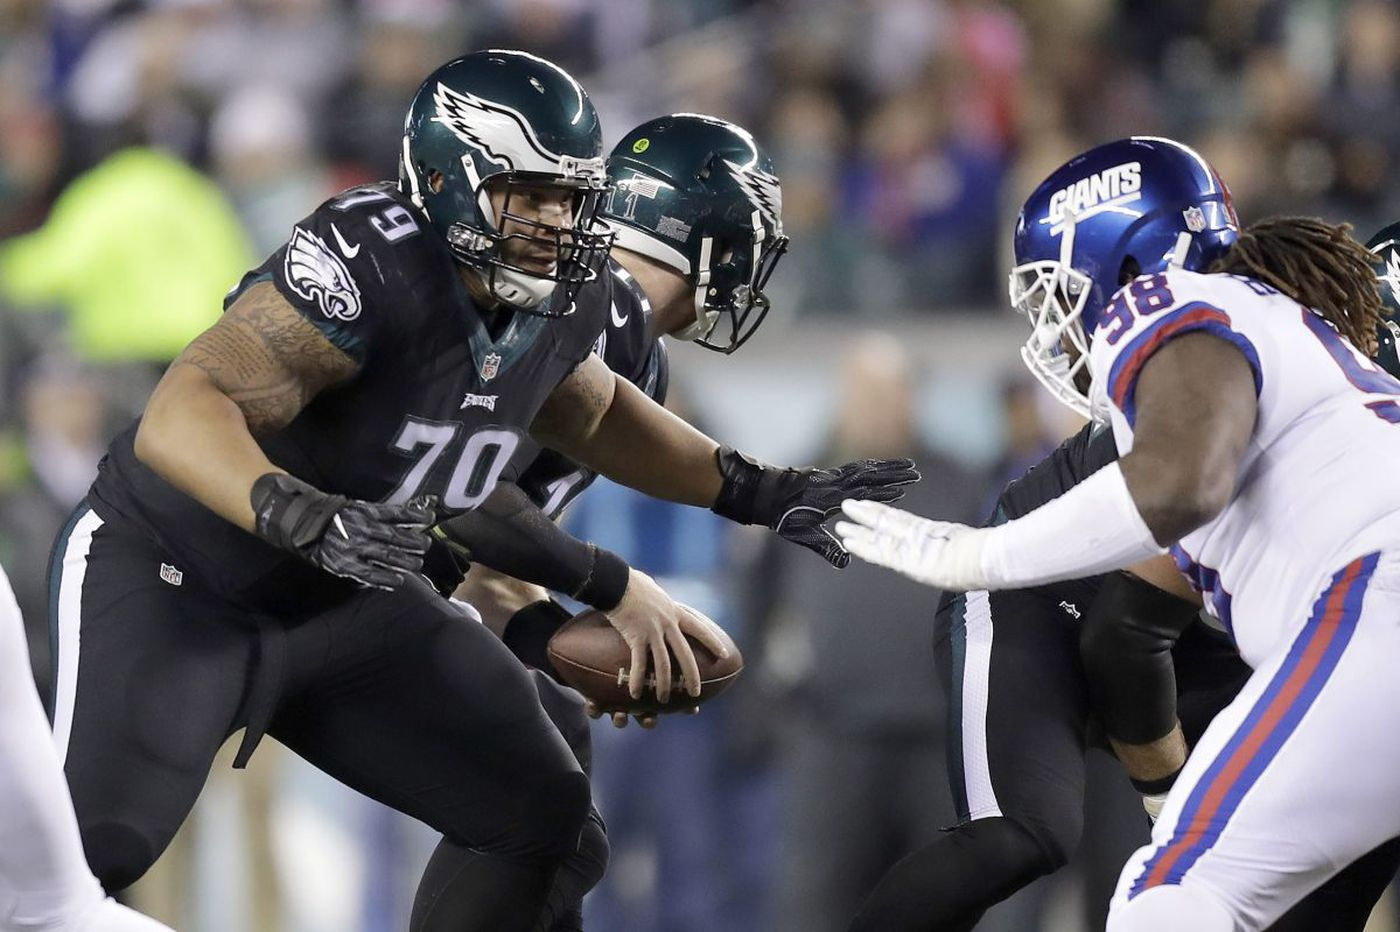 Eagles OL Brandon Brooks 'excited' about Pro Bowl honor, though he's 'here to try to get a ring'